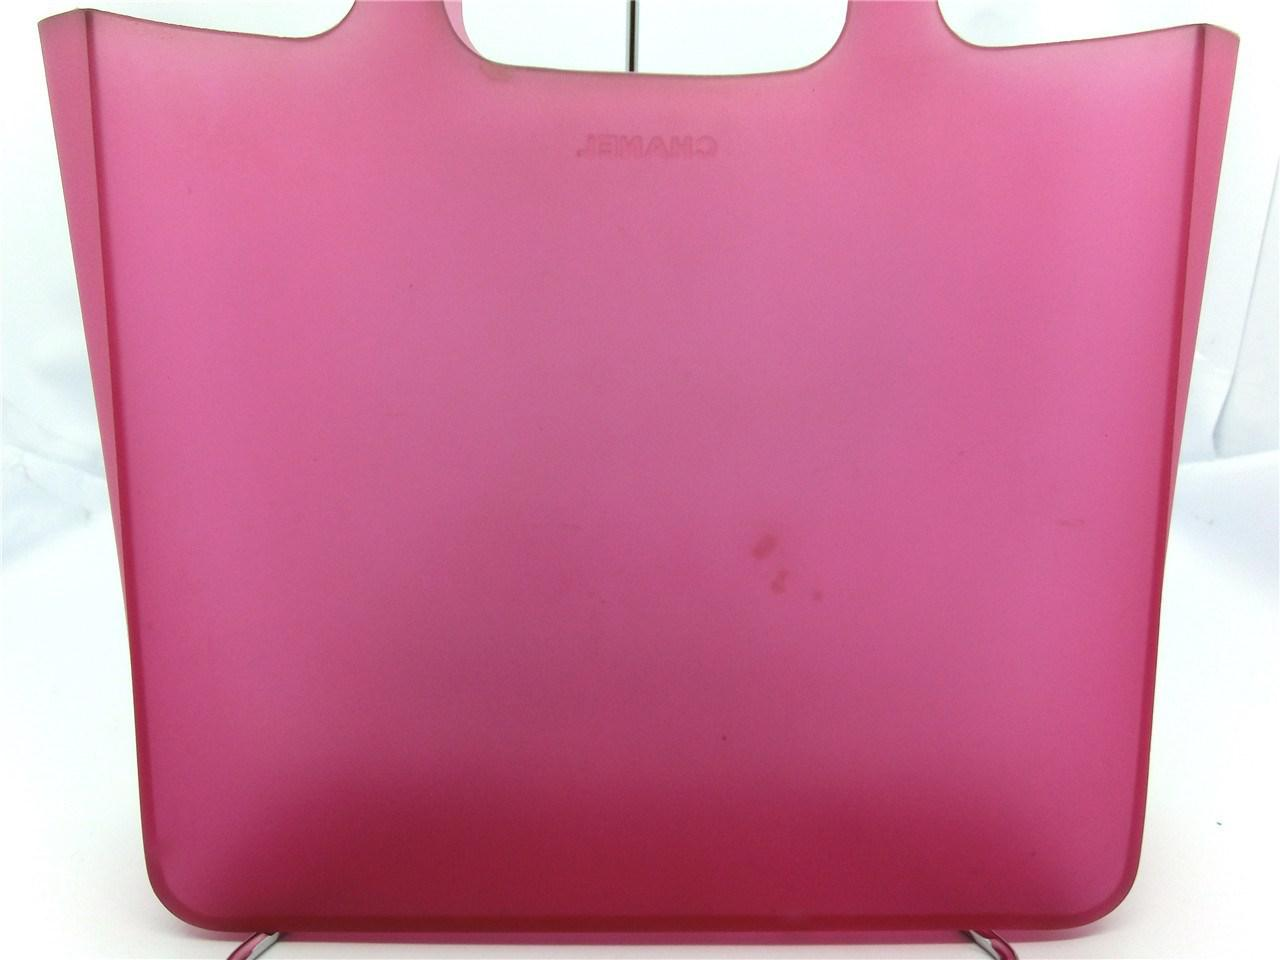 871a005adf3 Lyst - Chanel Authentic Pink Jelly Rubber Cc Logo Shopper Tote Bag ...